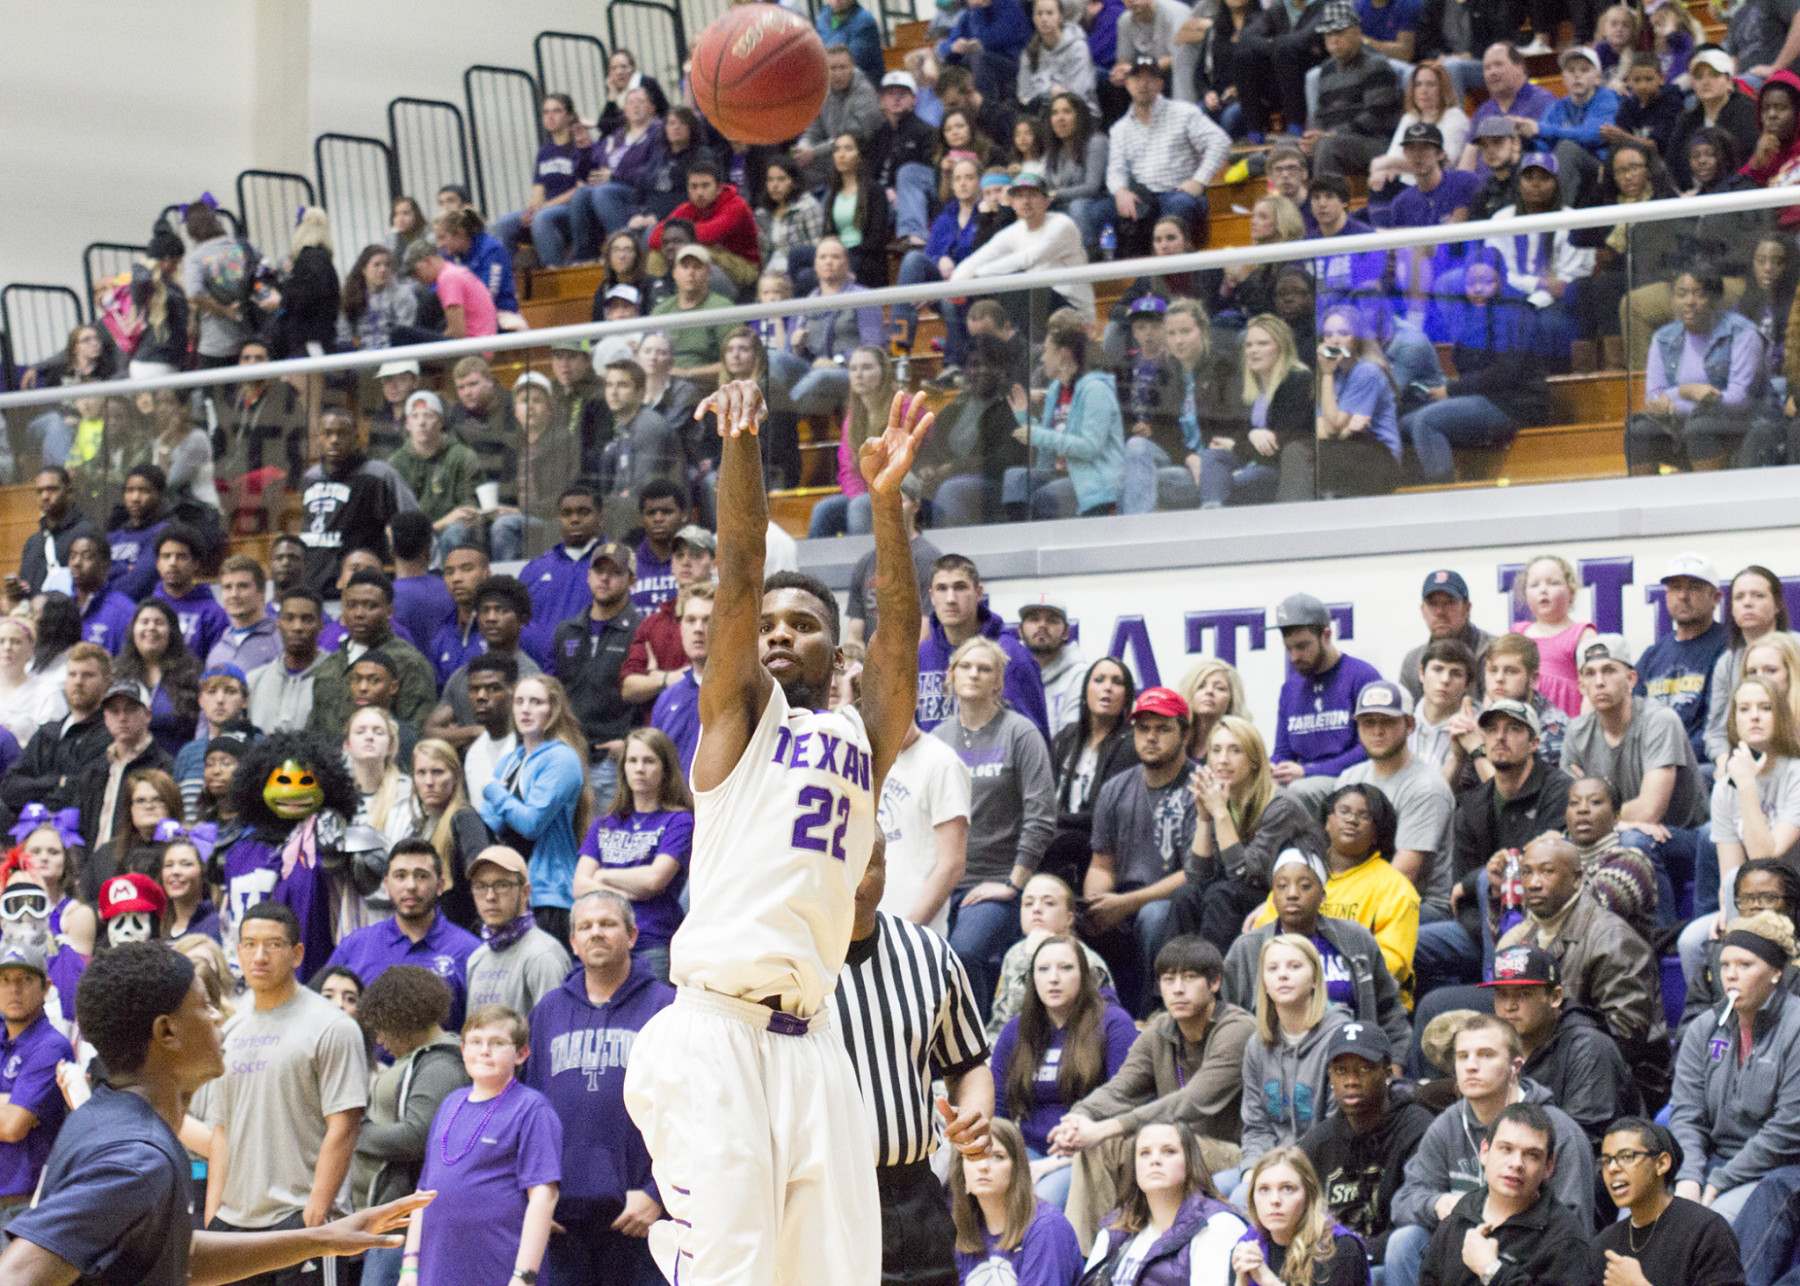 Mo Lee and Tarleton State will feel right at home during the South Central Region Championship at Wisdom Gym. || Photo courtesy CHET MARTIN